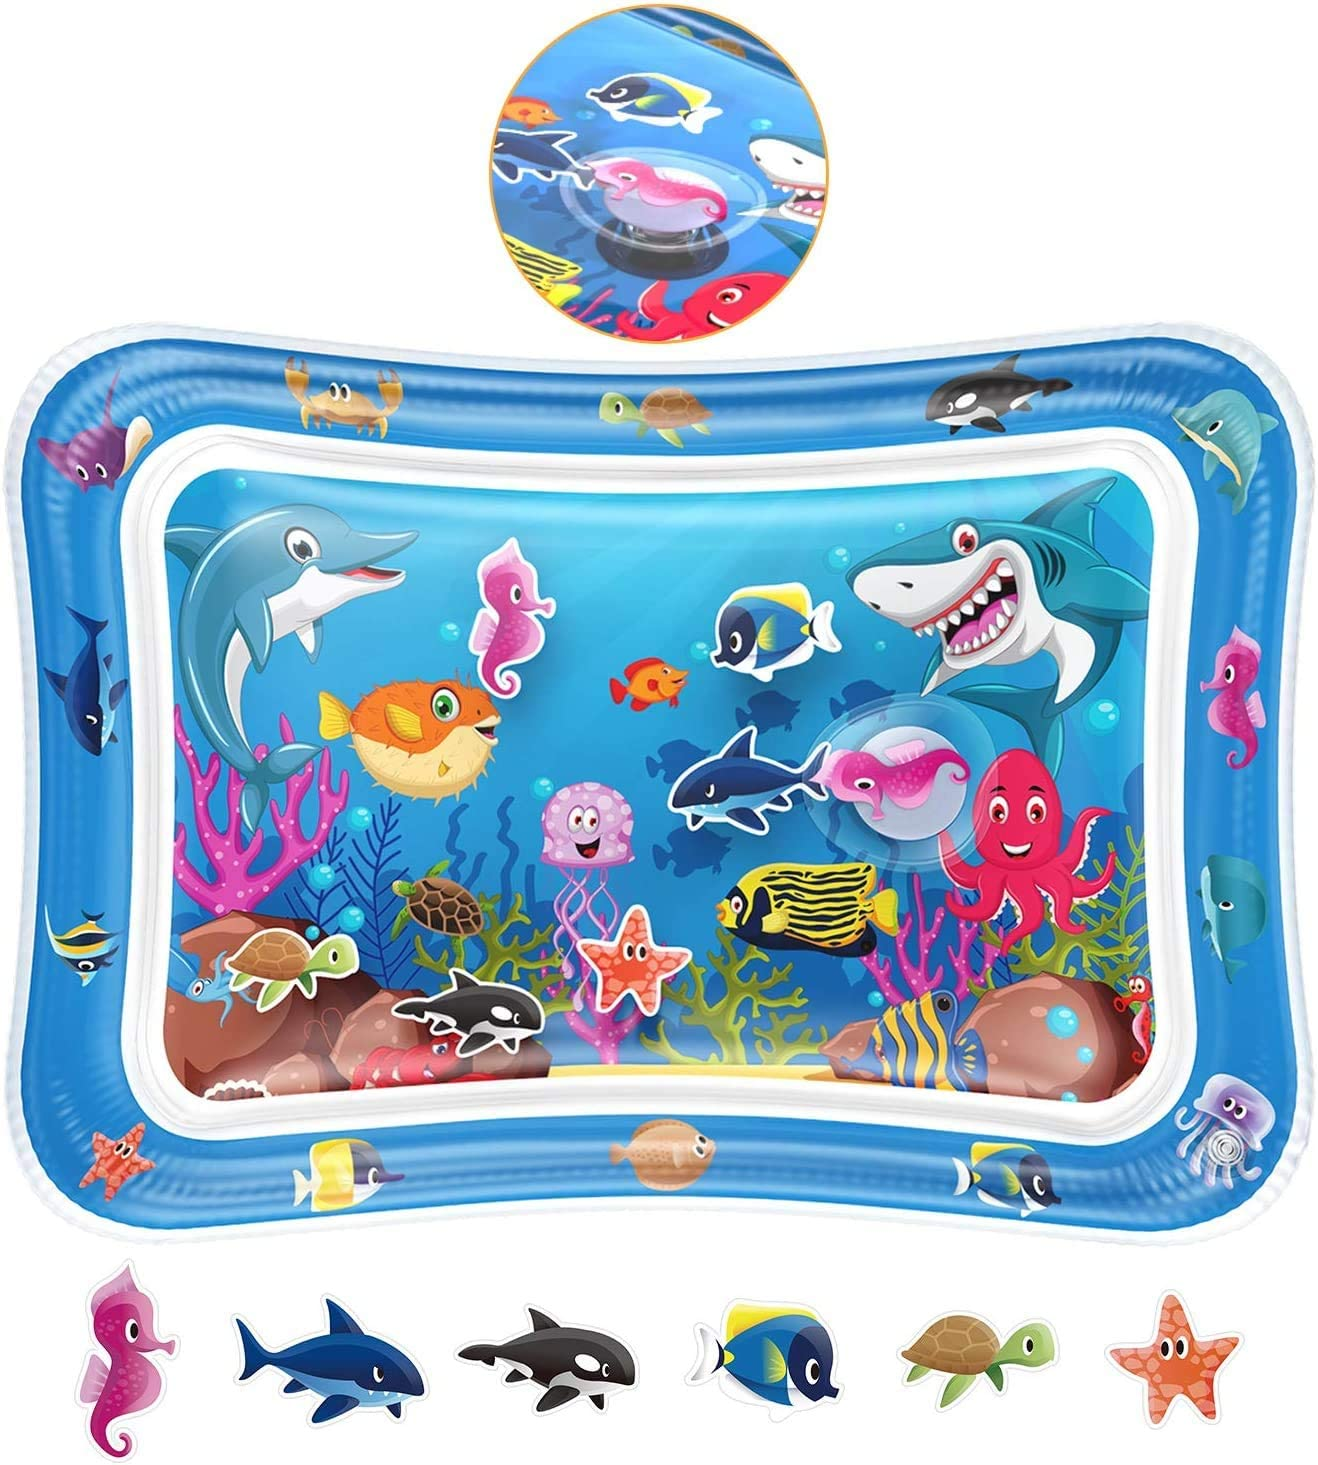 sdhjfsddf Tummy Time Baby Water Play Mat Toys for 3 6 9 Months for Infants Newborns and Toddlers Floor Activity Play Center, Play Water Mat Inflatable Play Activity Center for Babies and Toddlers